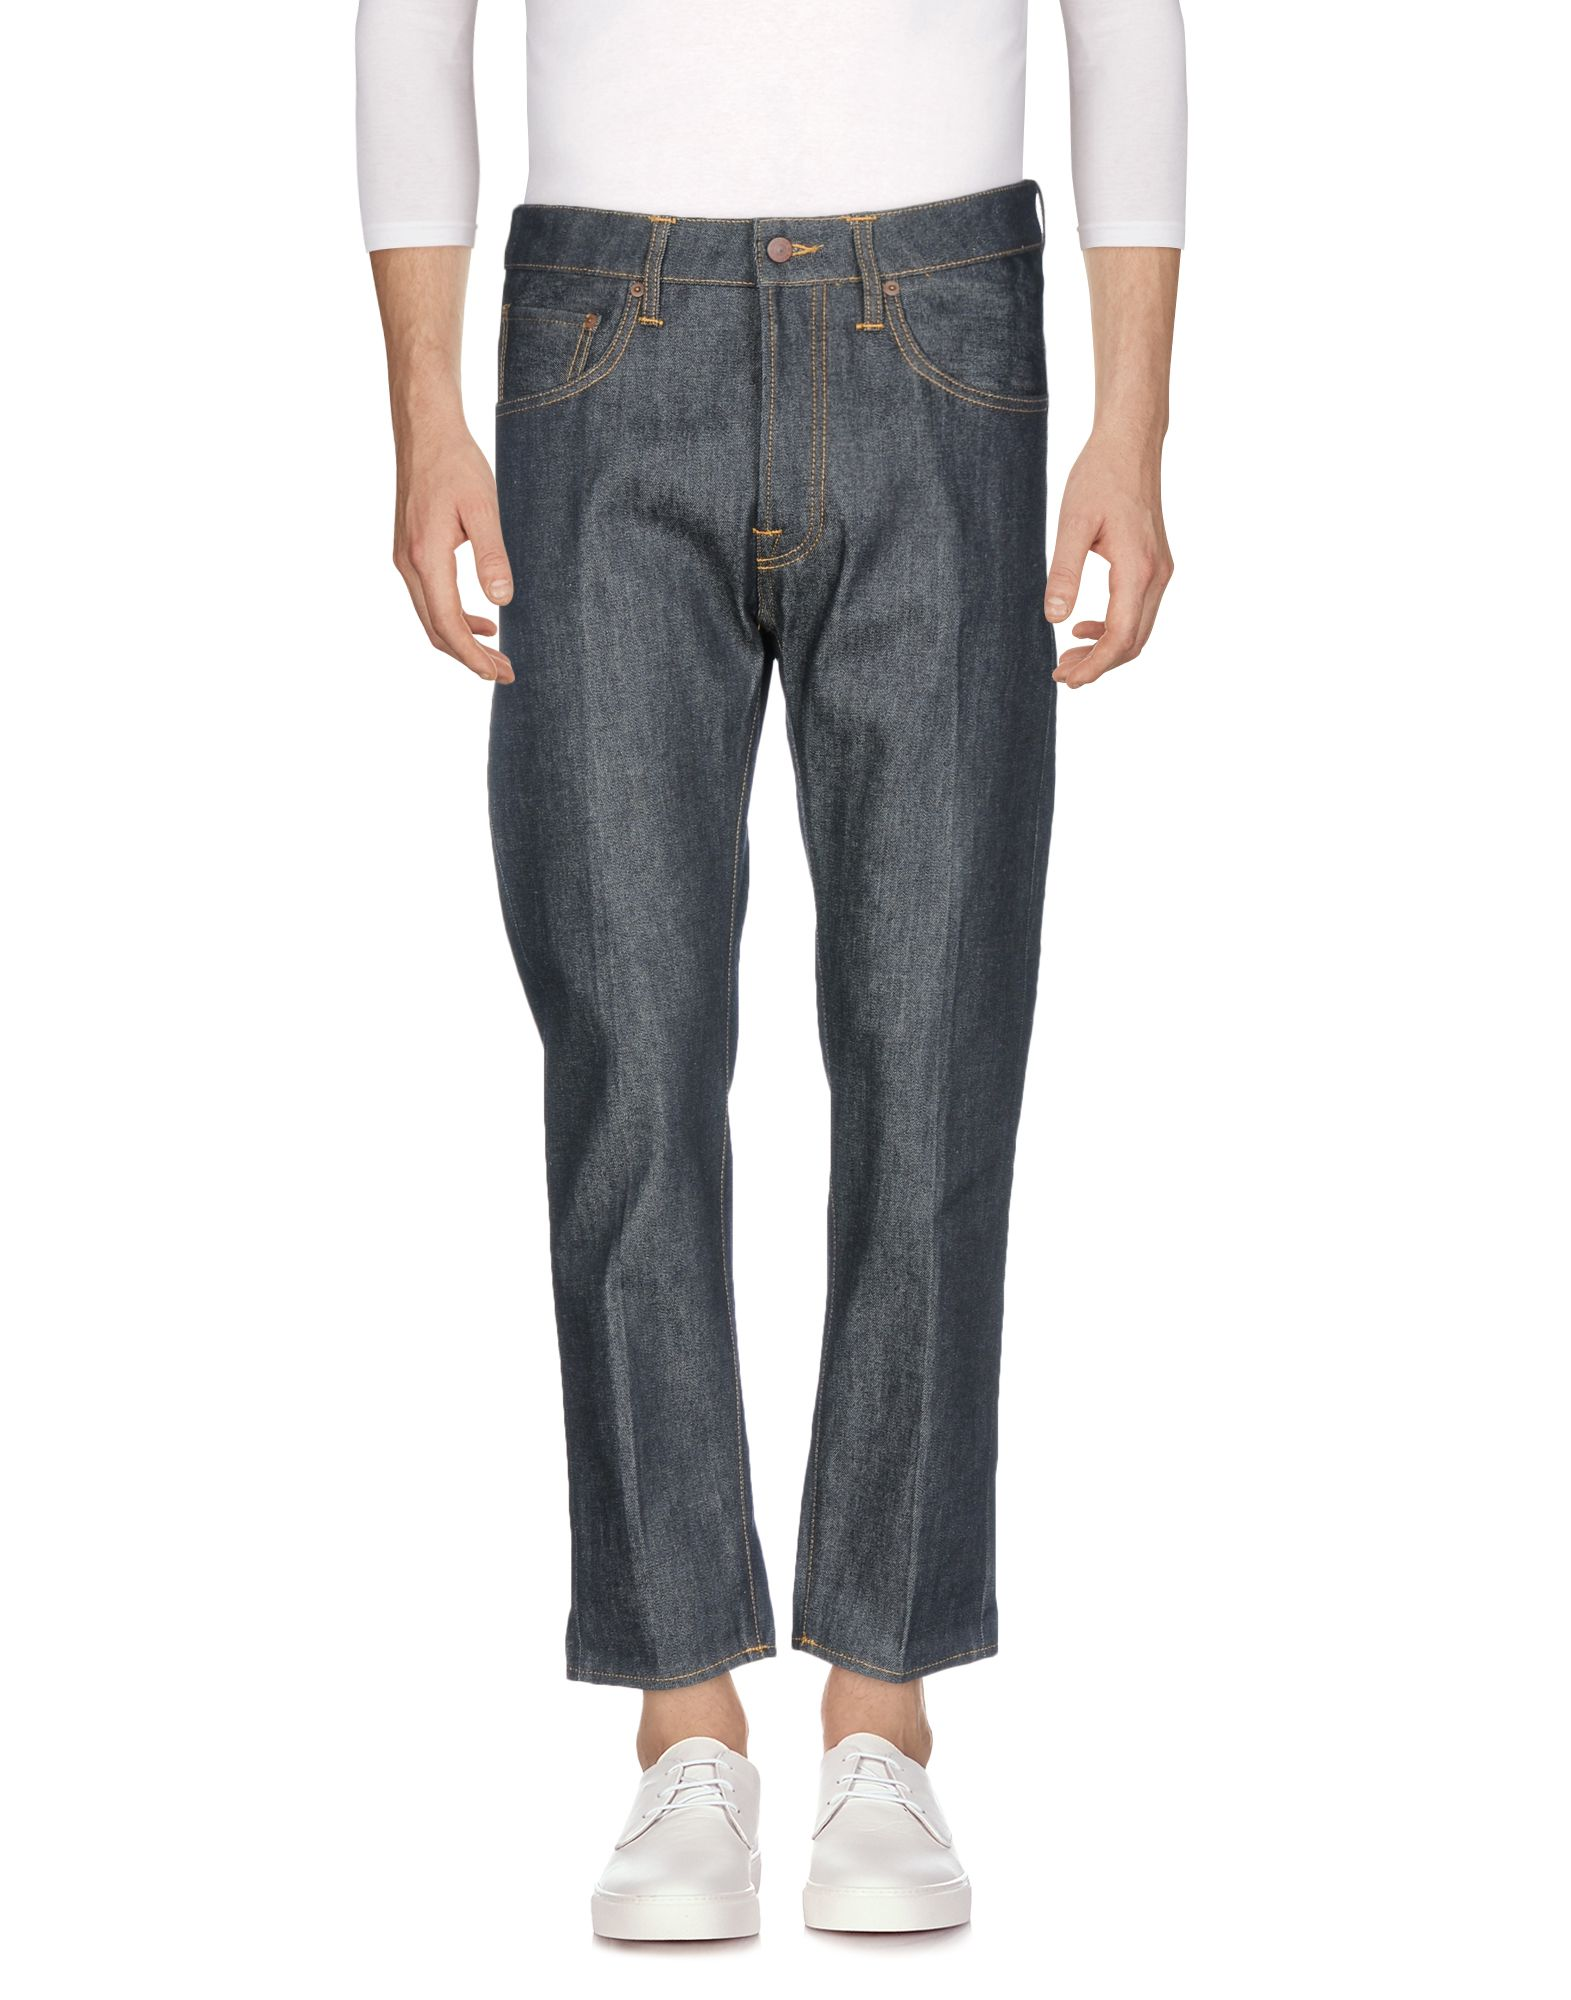 Pantaloni Jeans (+) People Uomo - Acquista online su